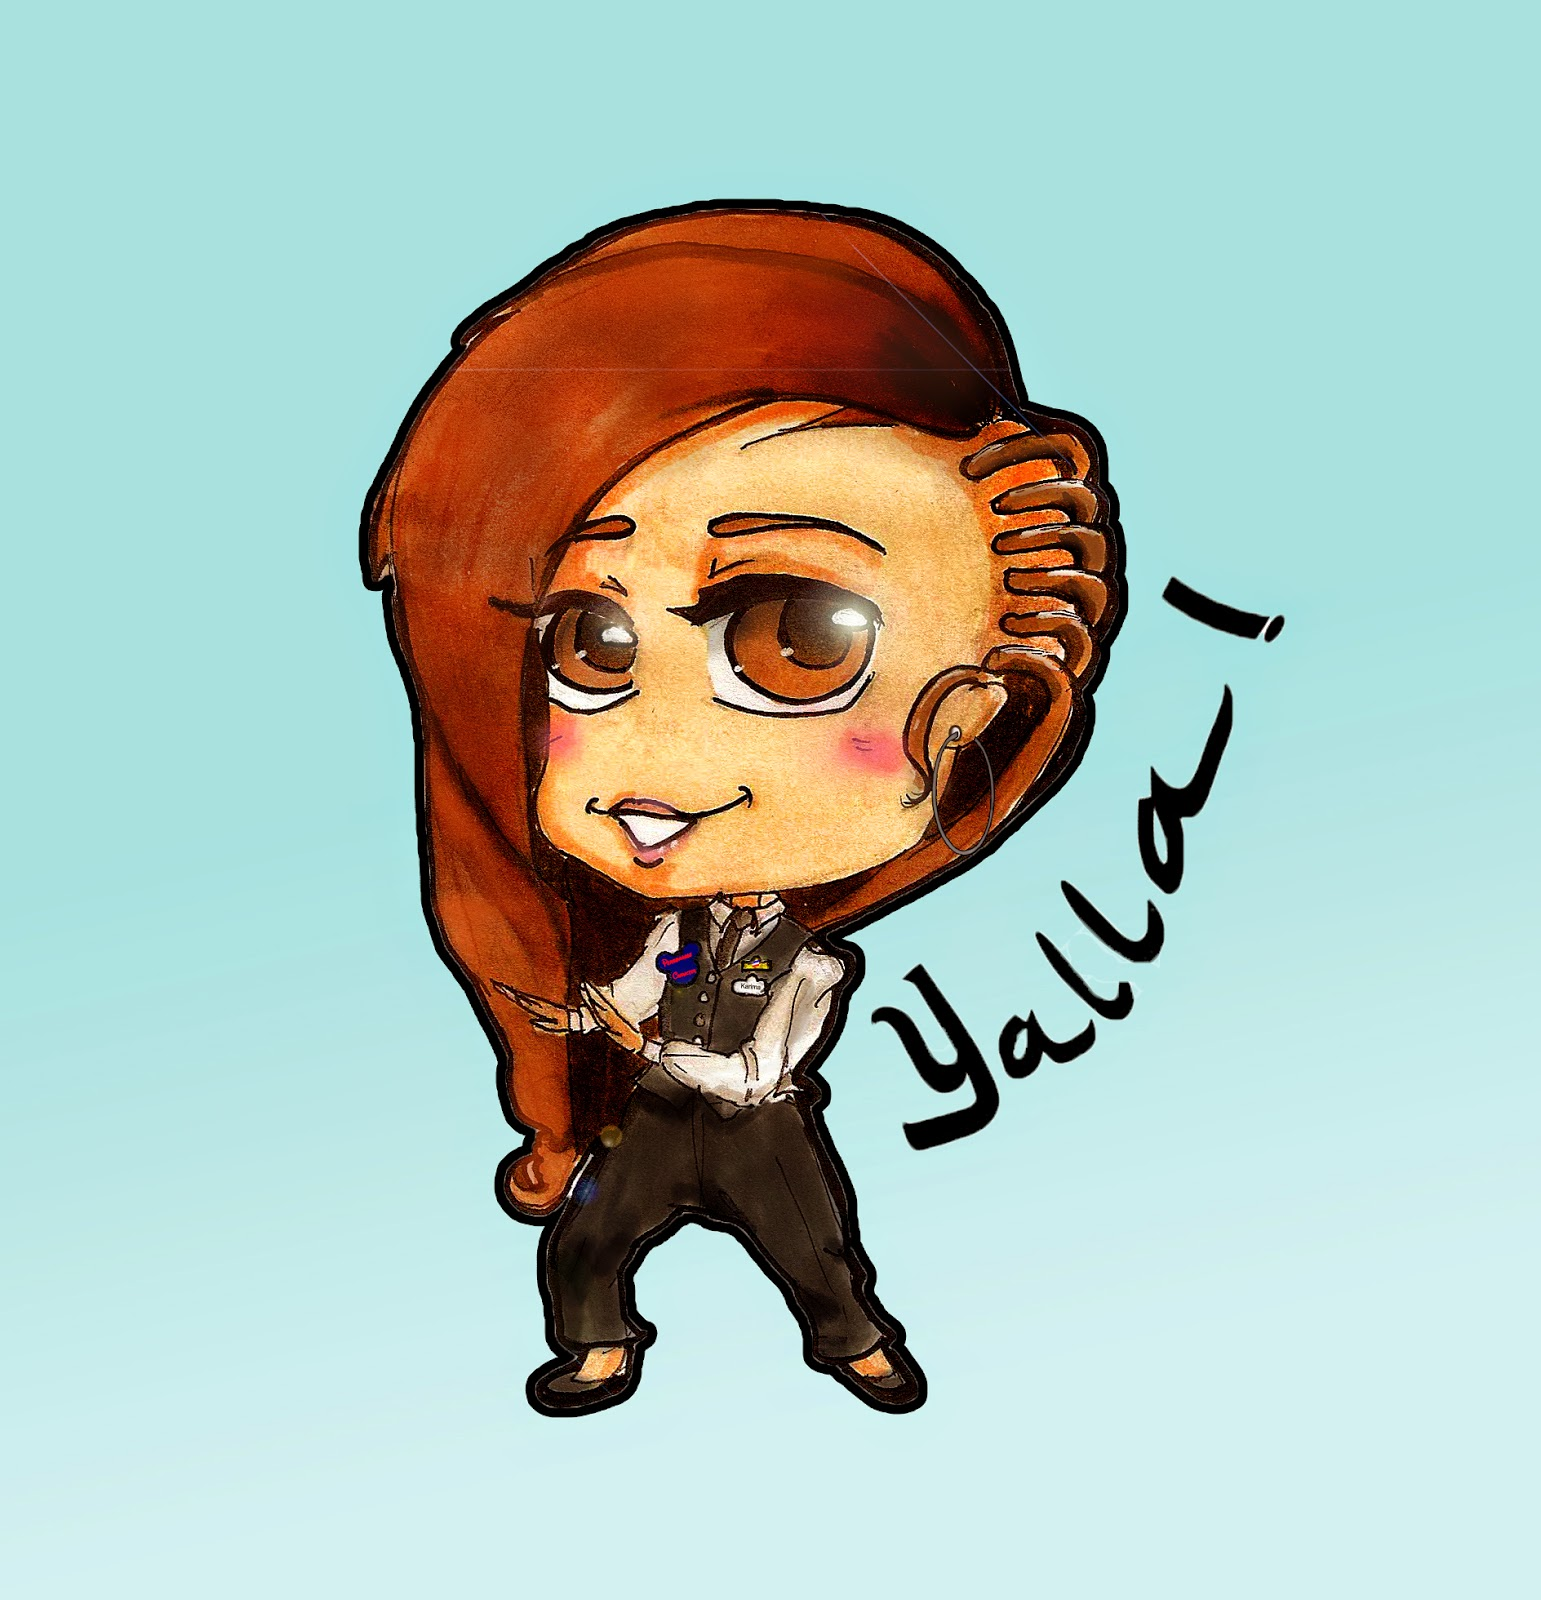 Chibi, illustration, yalla woohzoolyn